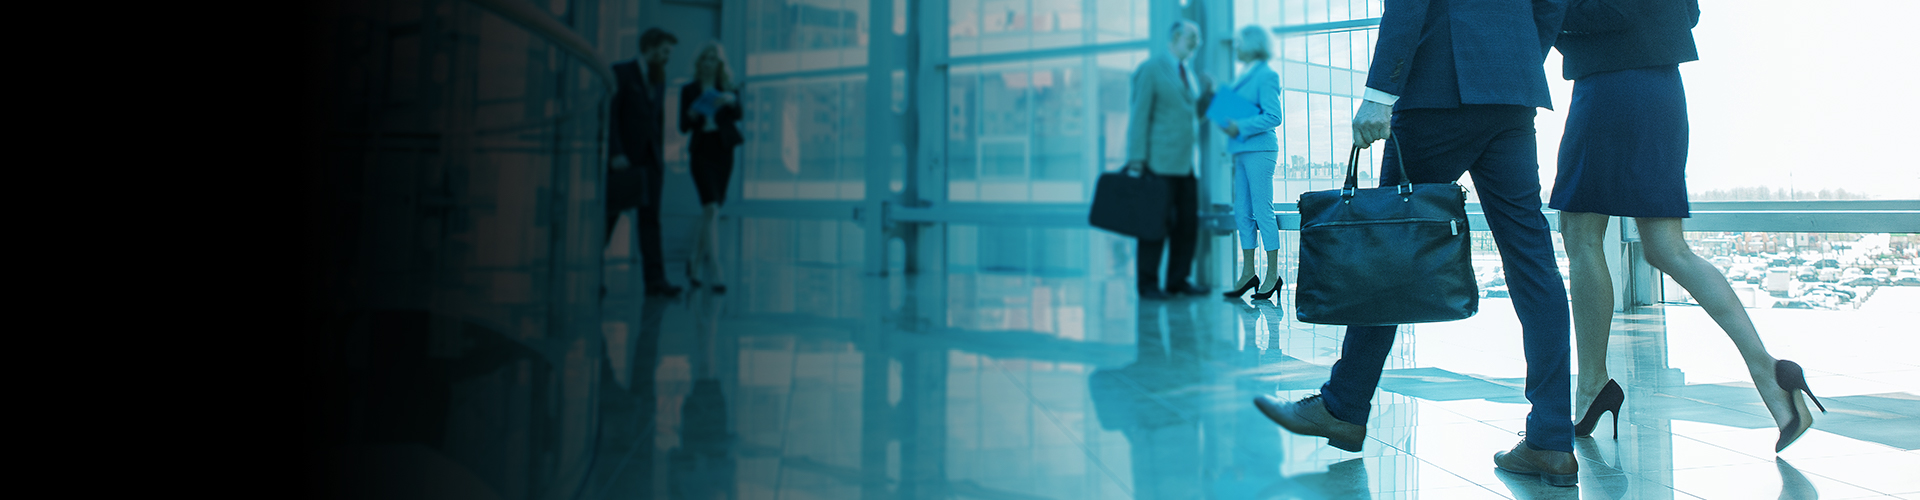 A man with a bag and a woman walking in an office building